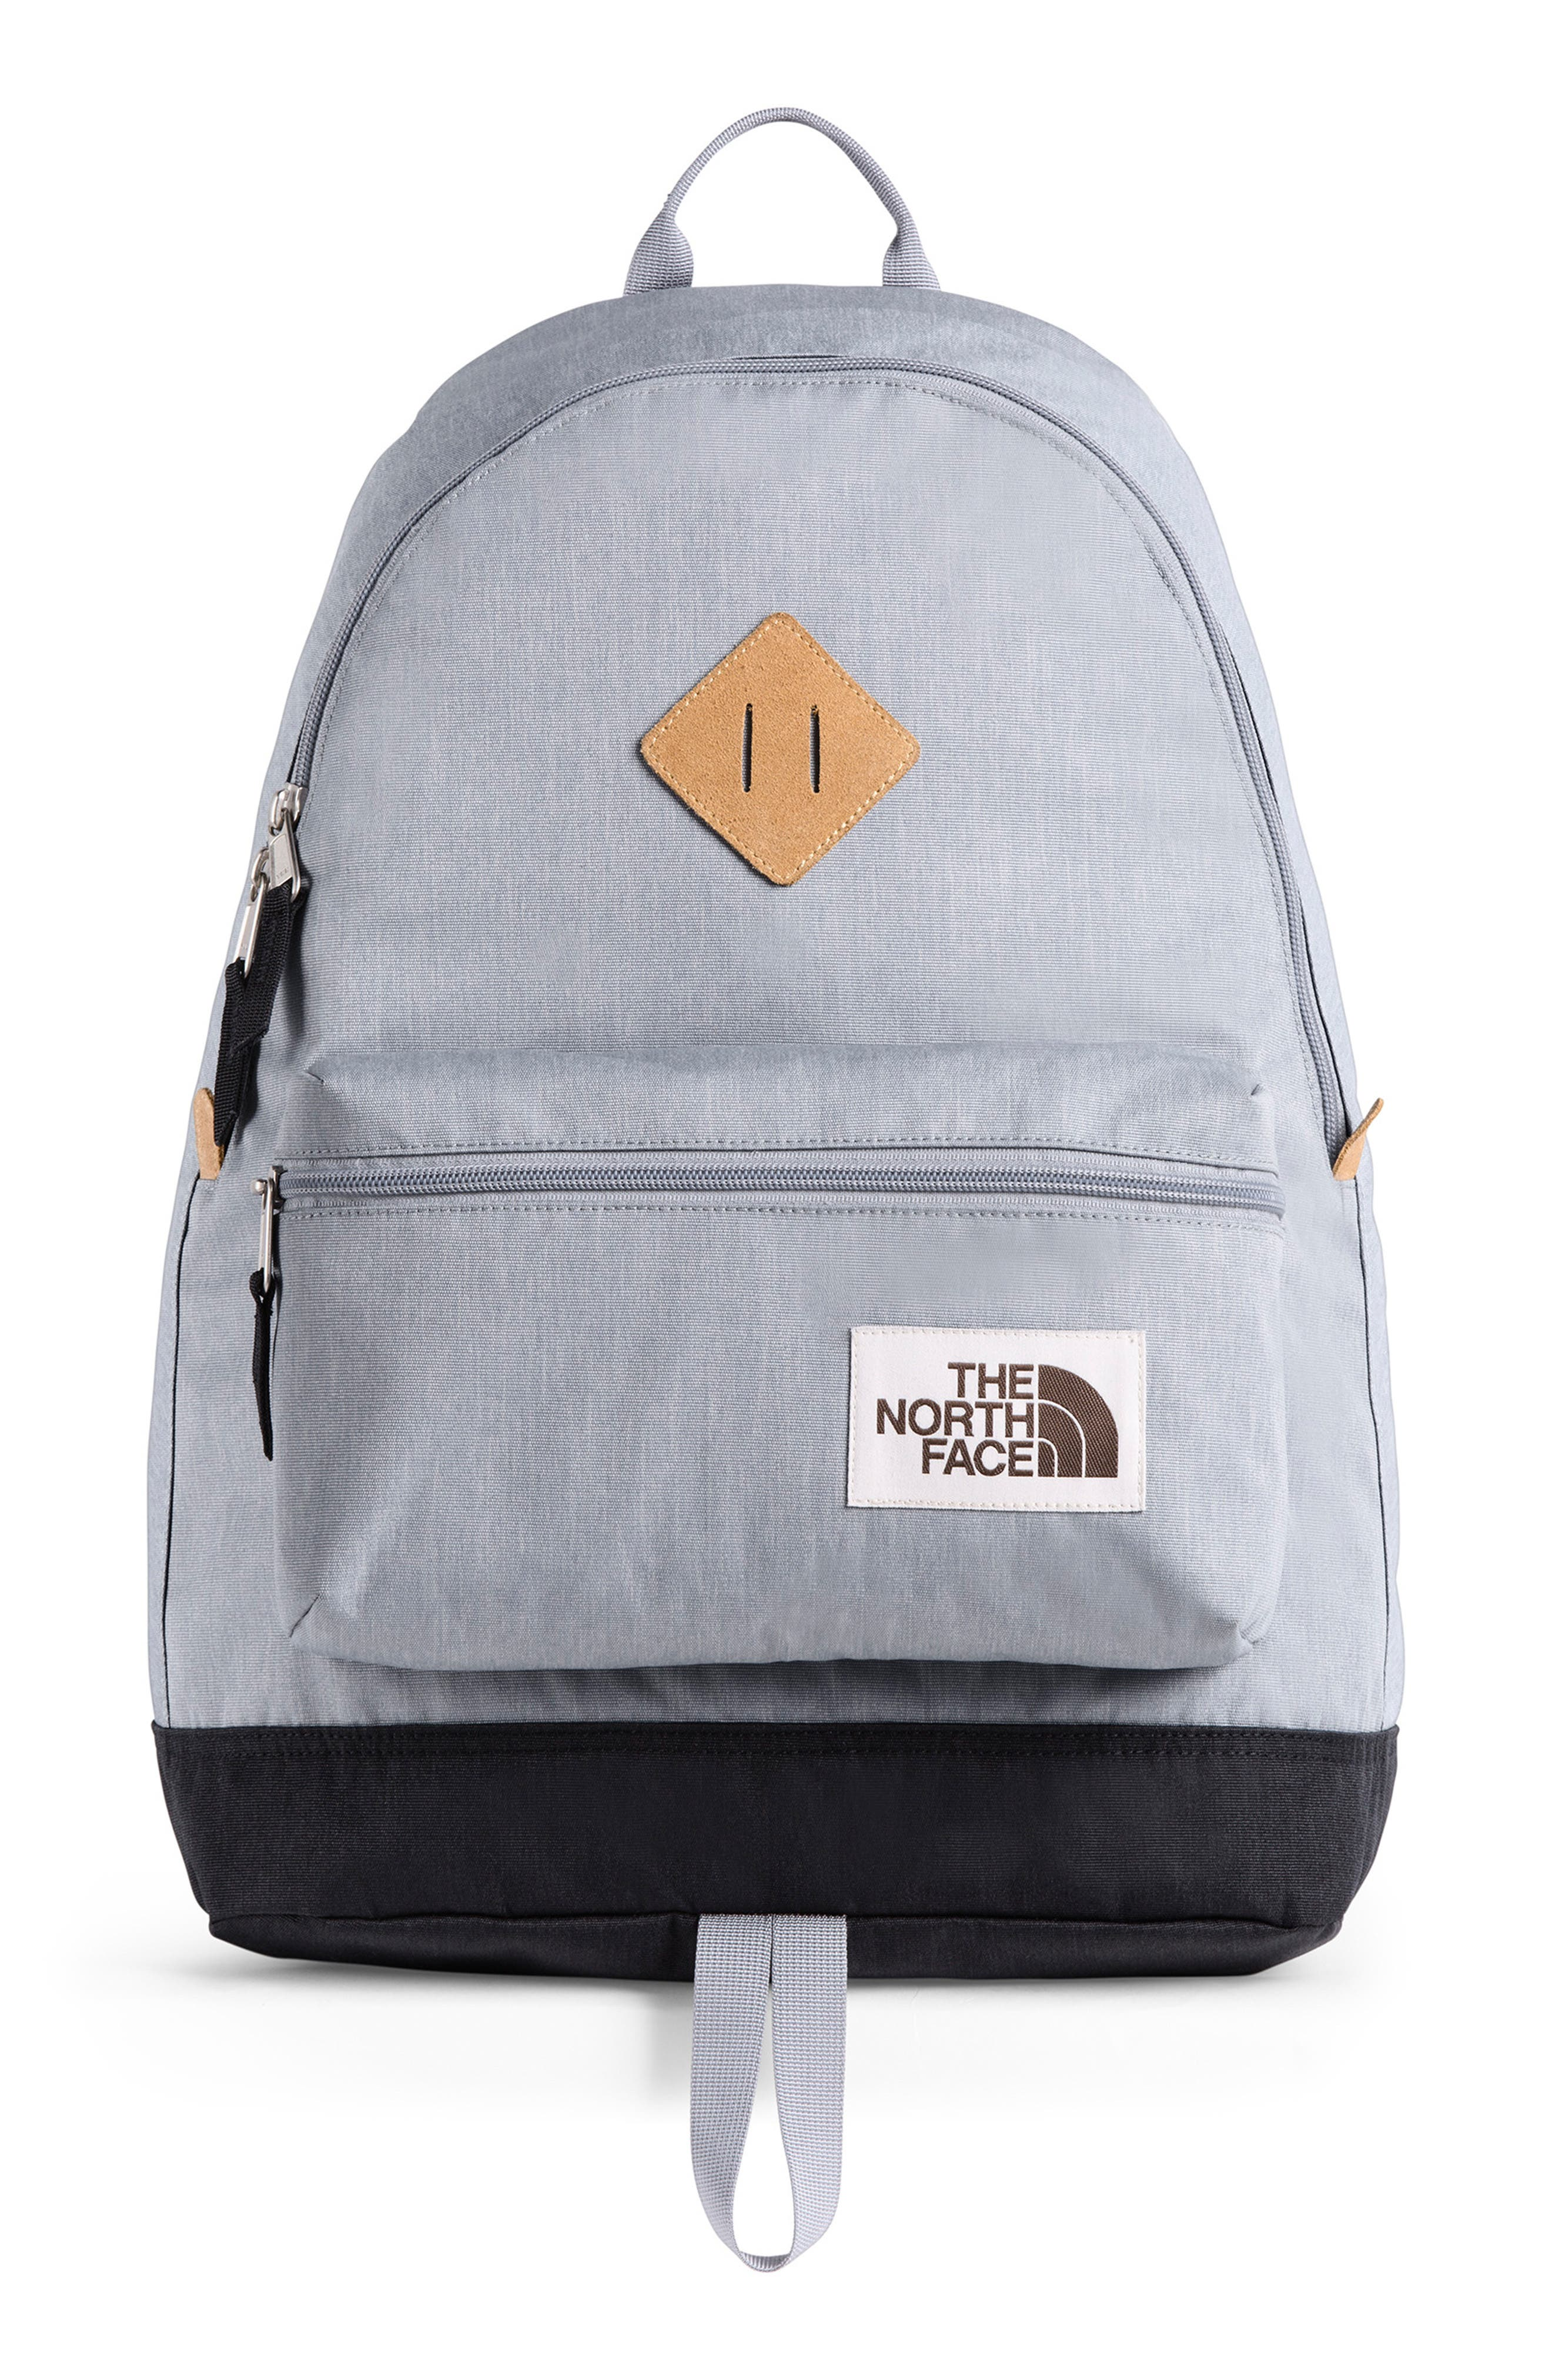 The North Face Berkeley Backpack - Grey